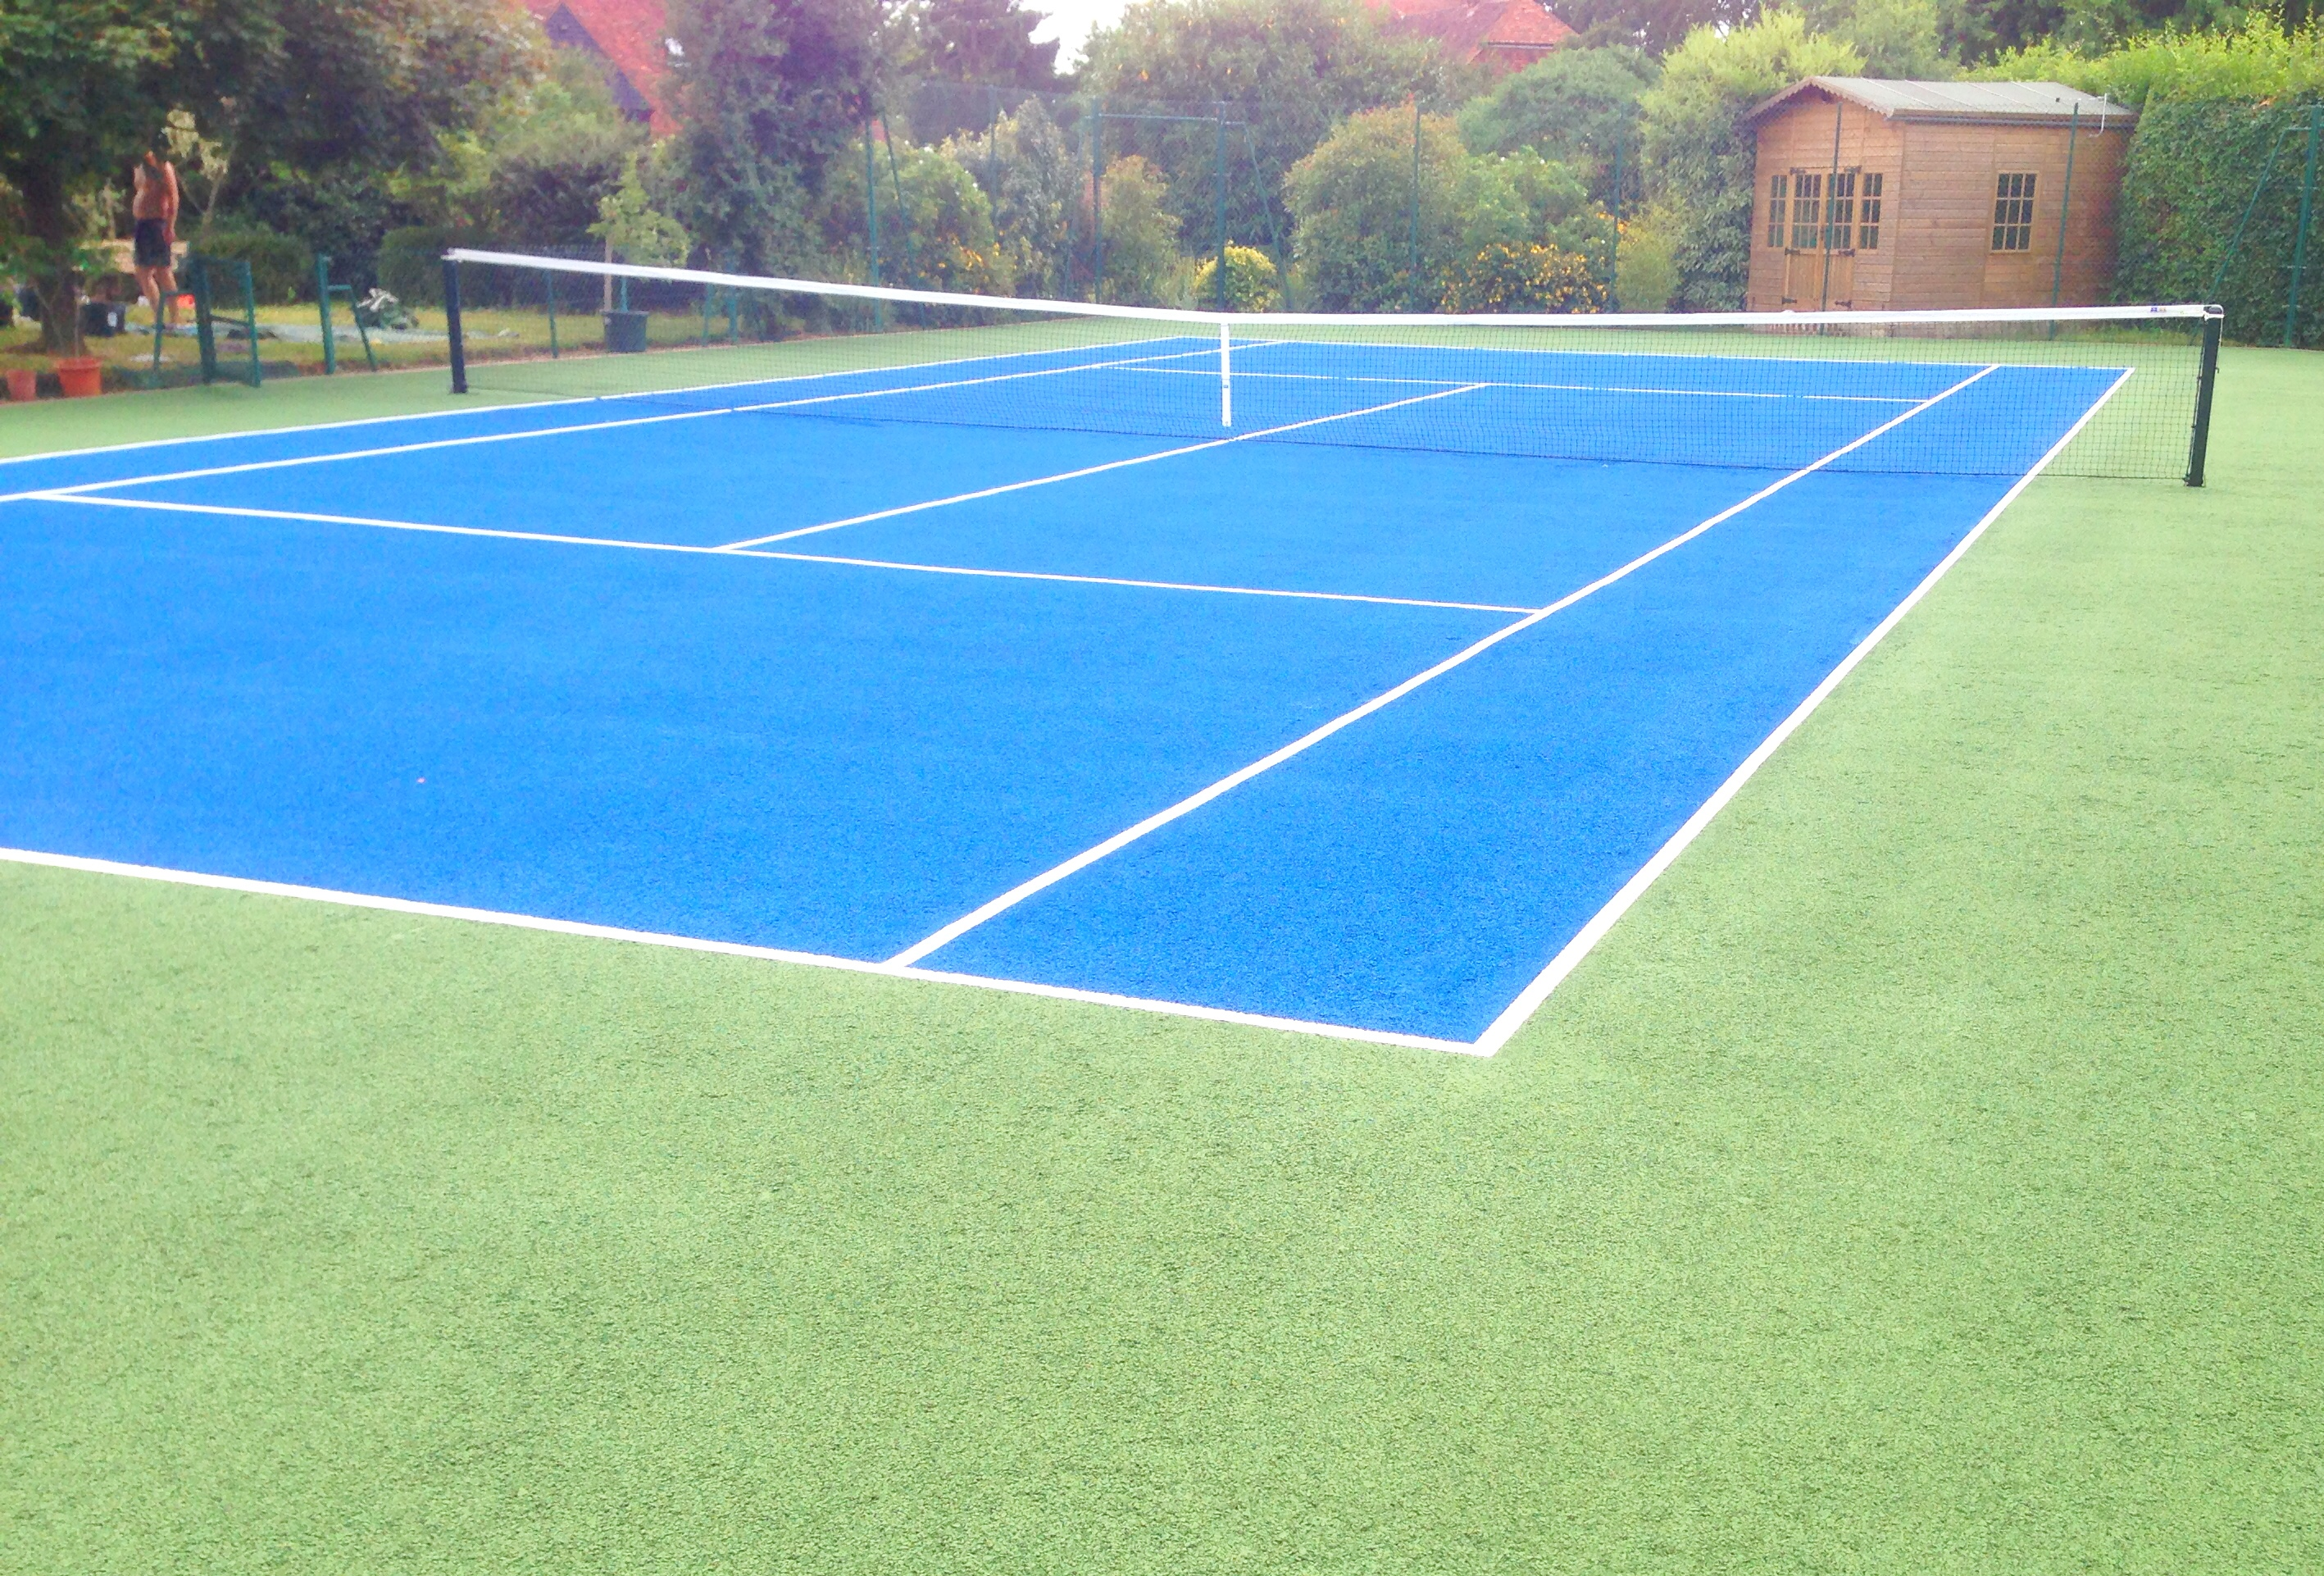 Maintaining Tennis Courts - Cleaning and Repainting ...